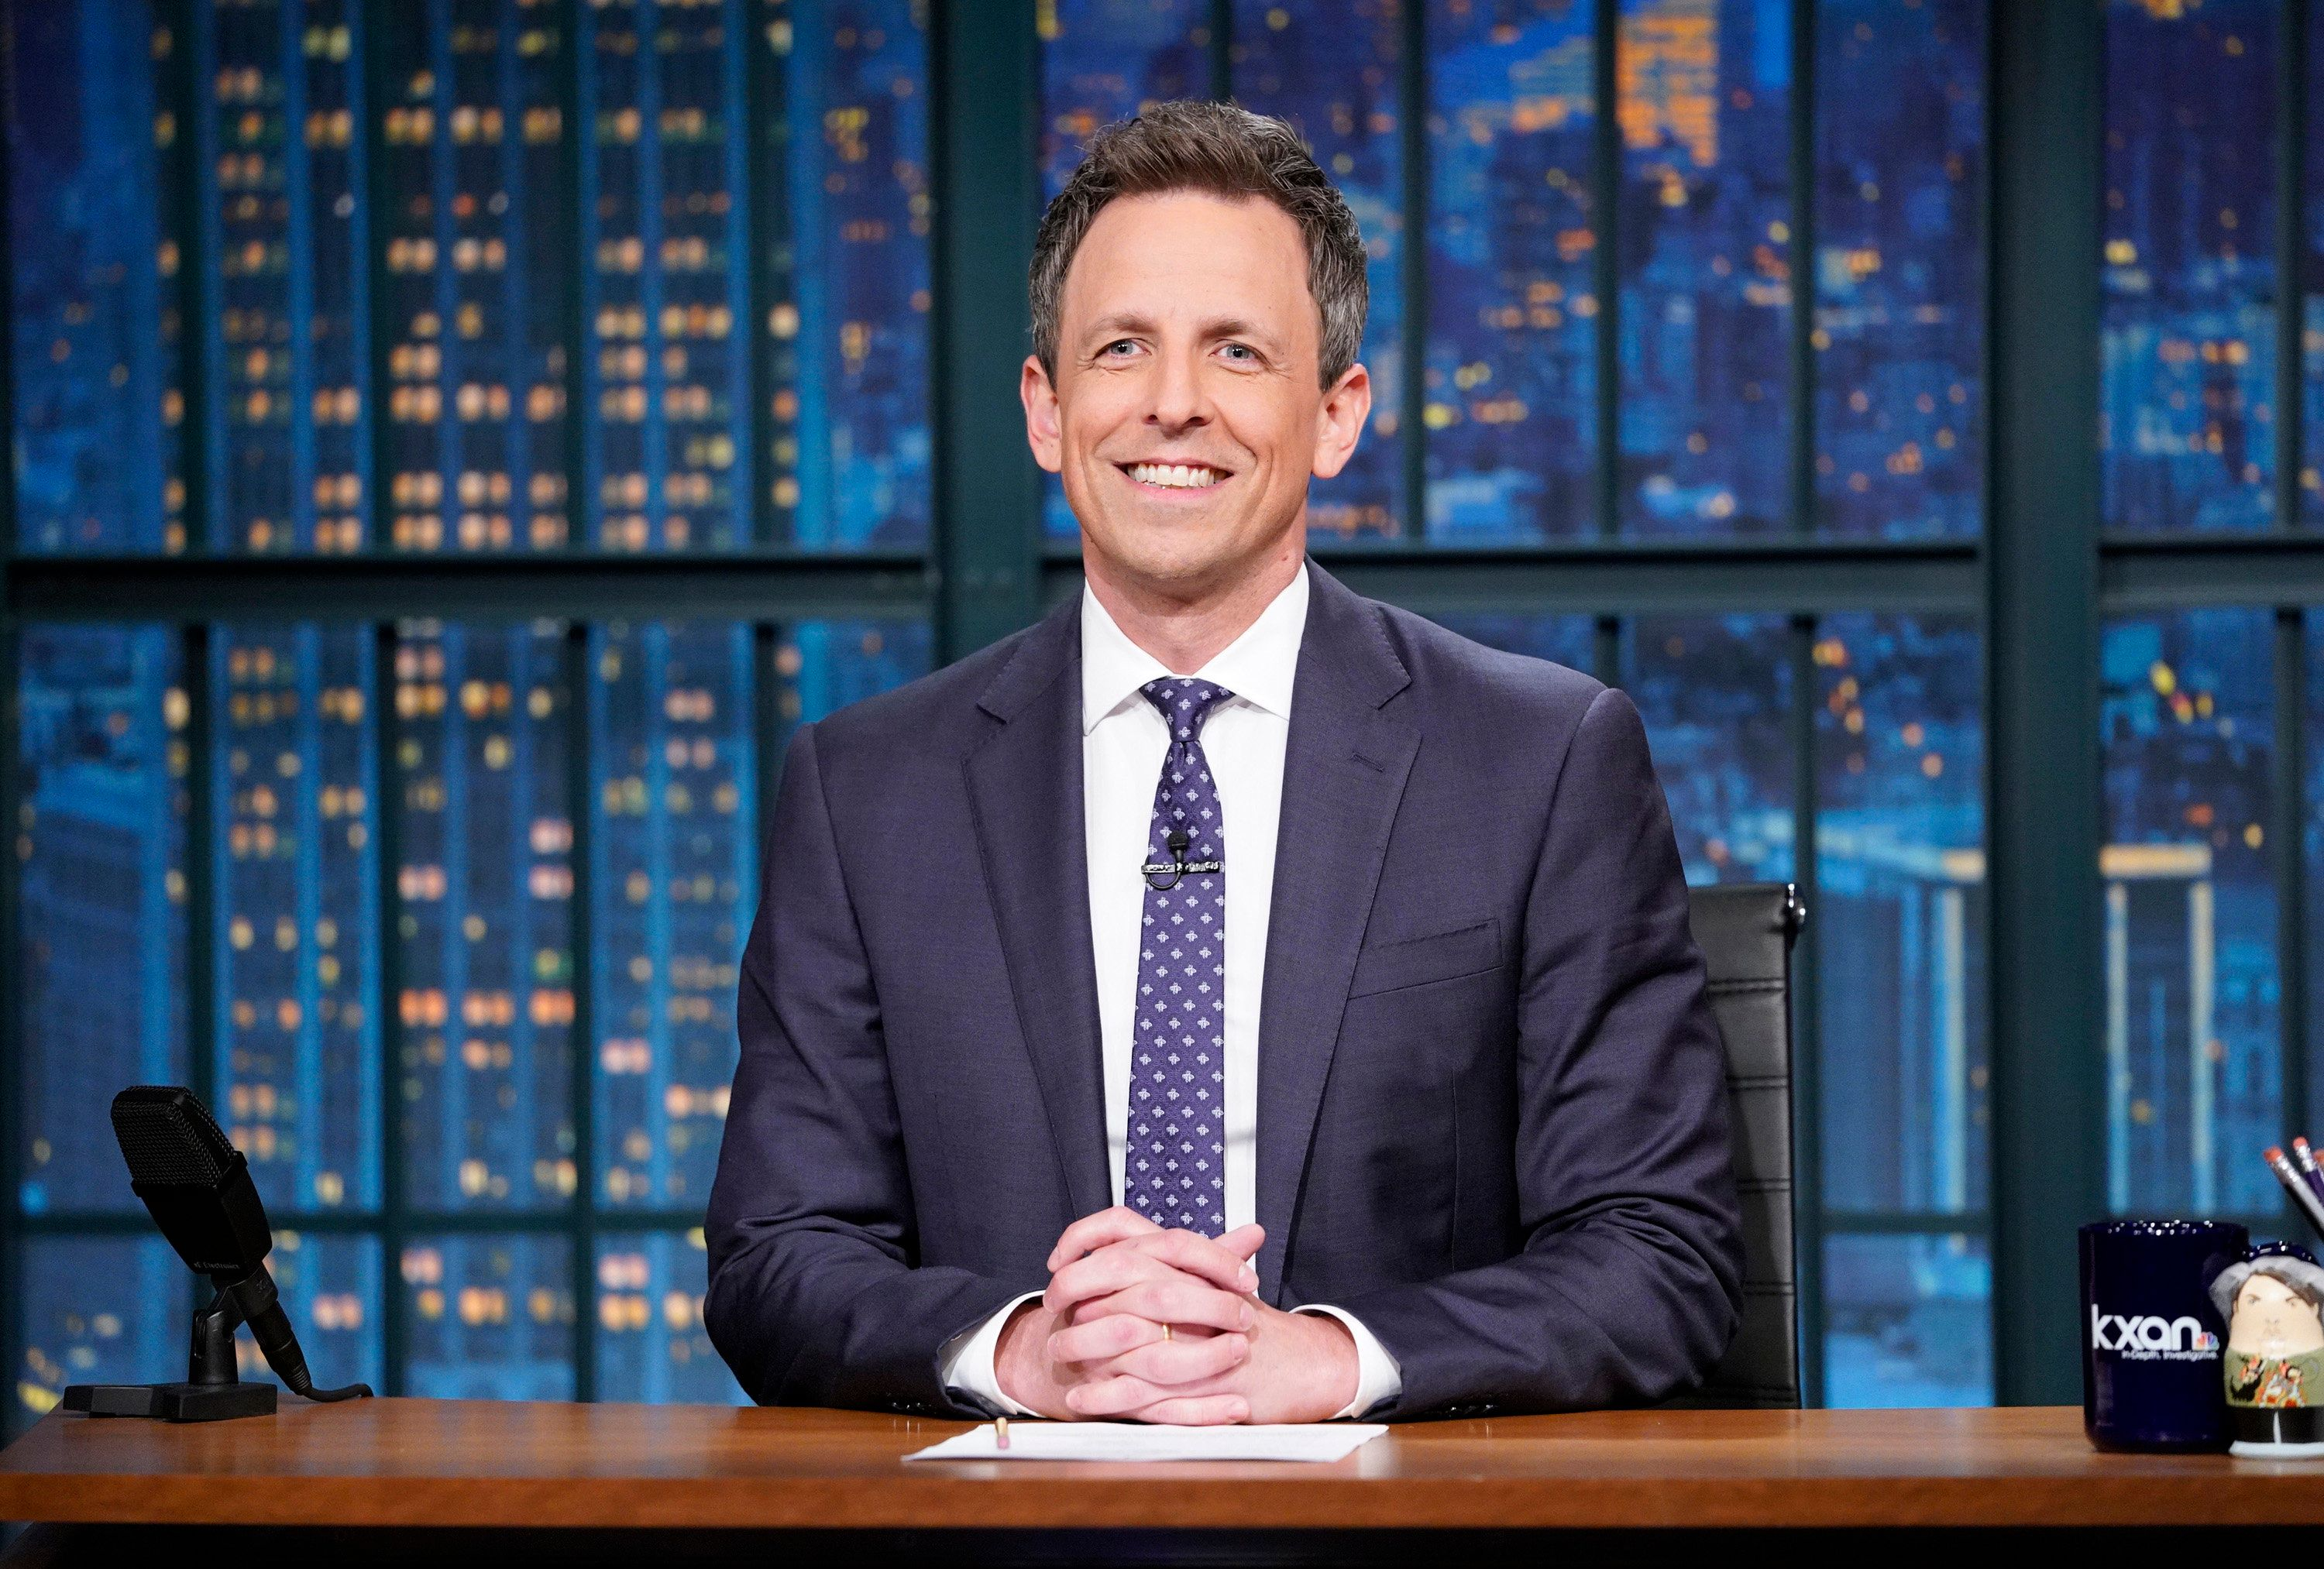 LATE NIGHT WITH SETH MEYERS -- Episode 682 -- Pictured: Host Seth Meyers at his desk on May 7, 2018 -- (Photo by: Lloyd Bishop/NBC/NBCU Photo Bank via Getty Images)